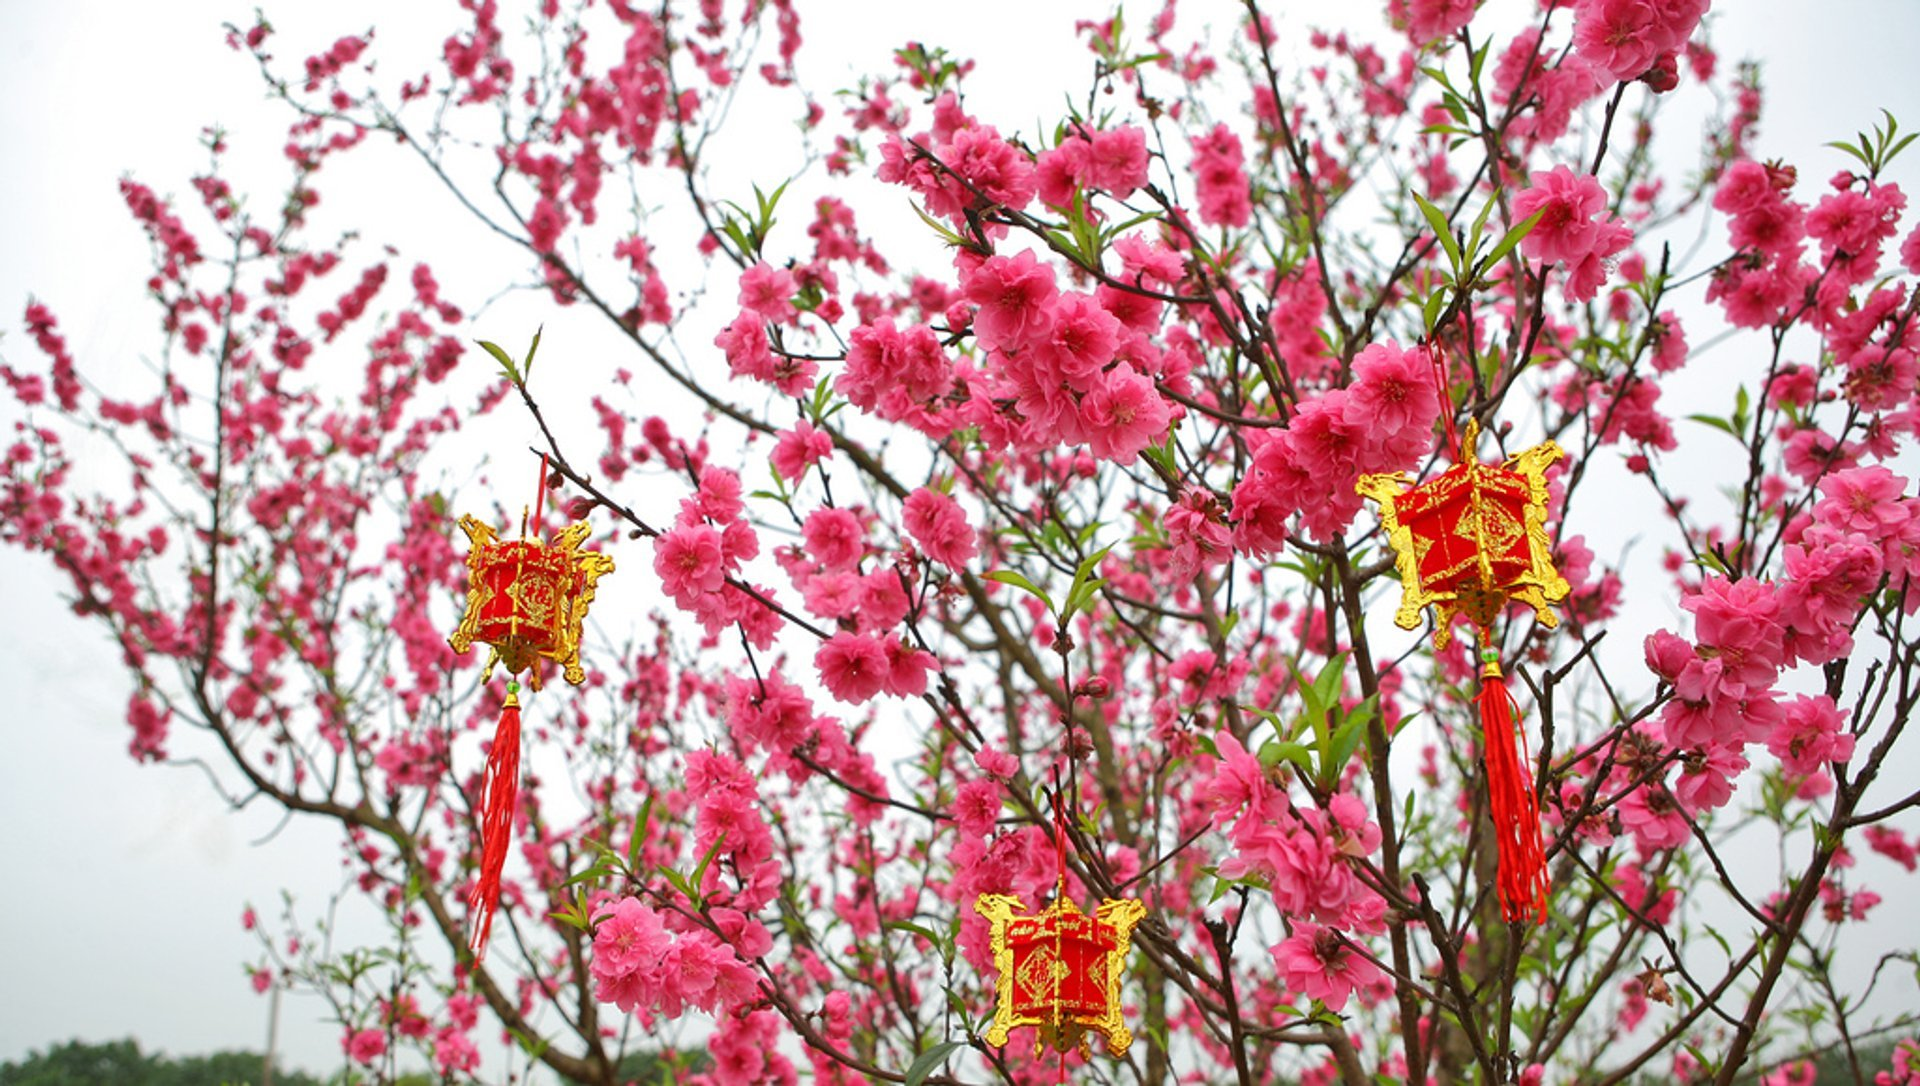 Peach Blossom Season in Vietnam - Best Season 2020